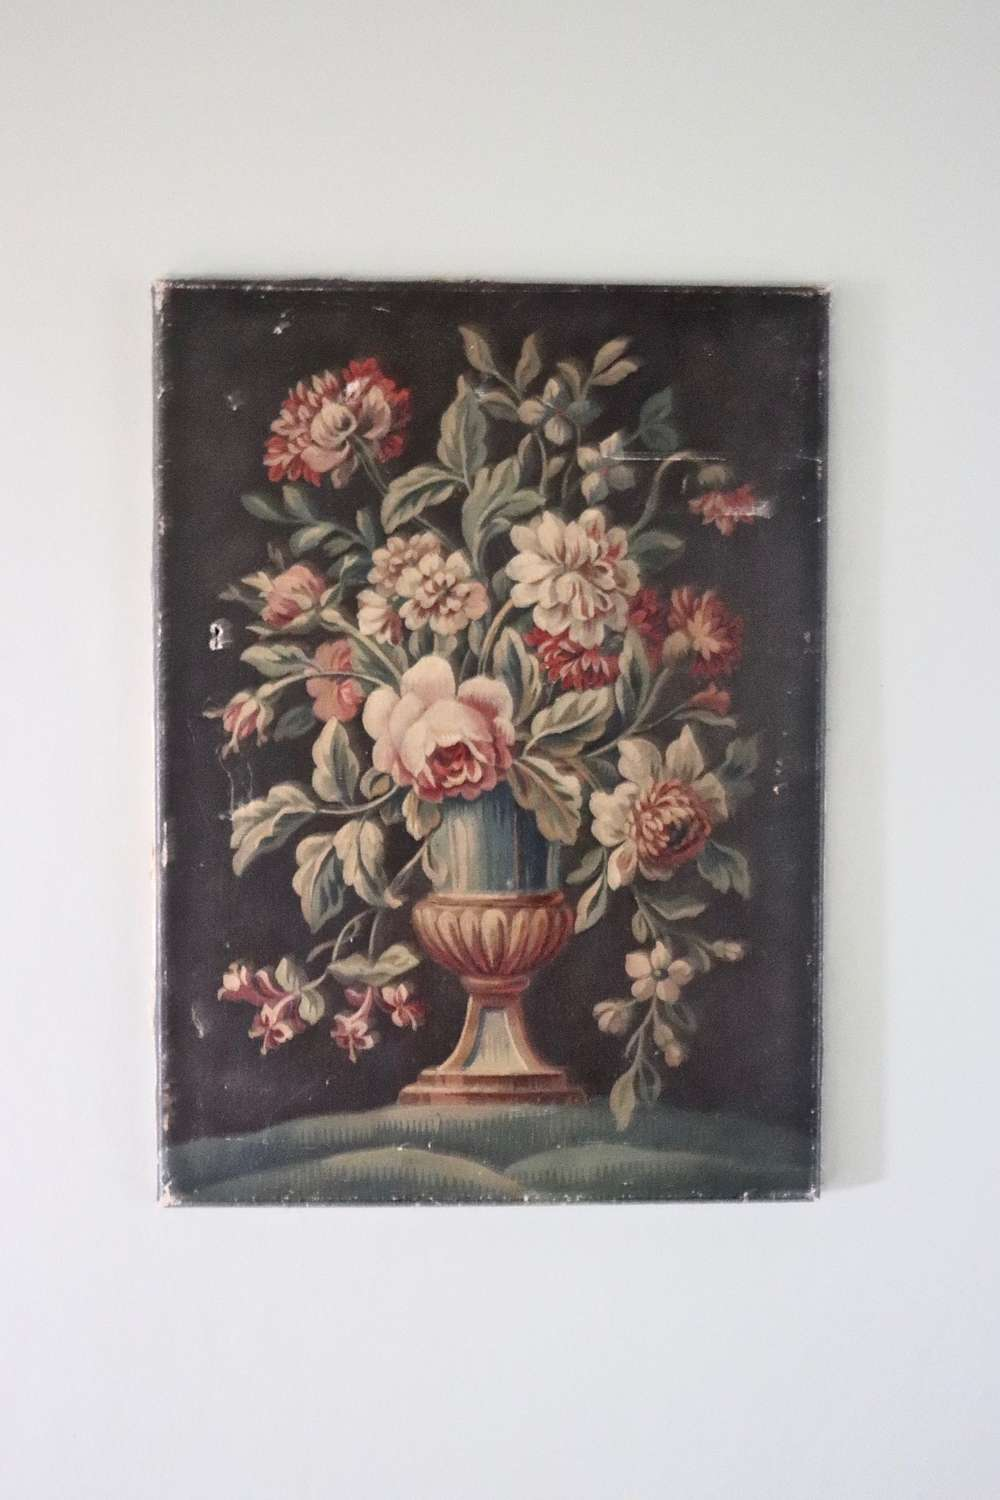 19th century French still life of flowers in a vase